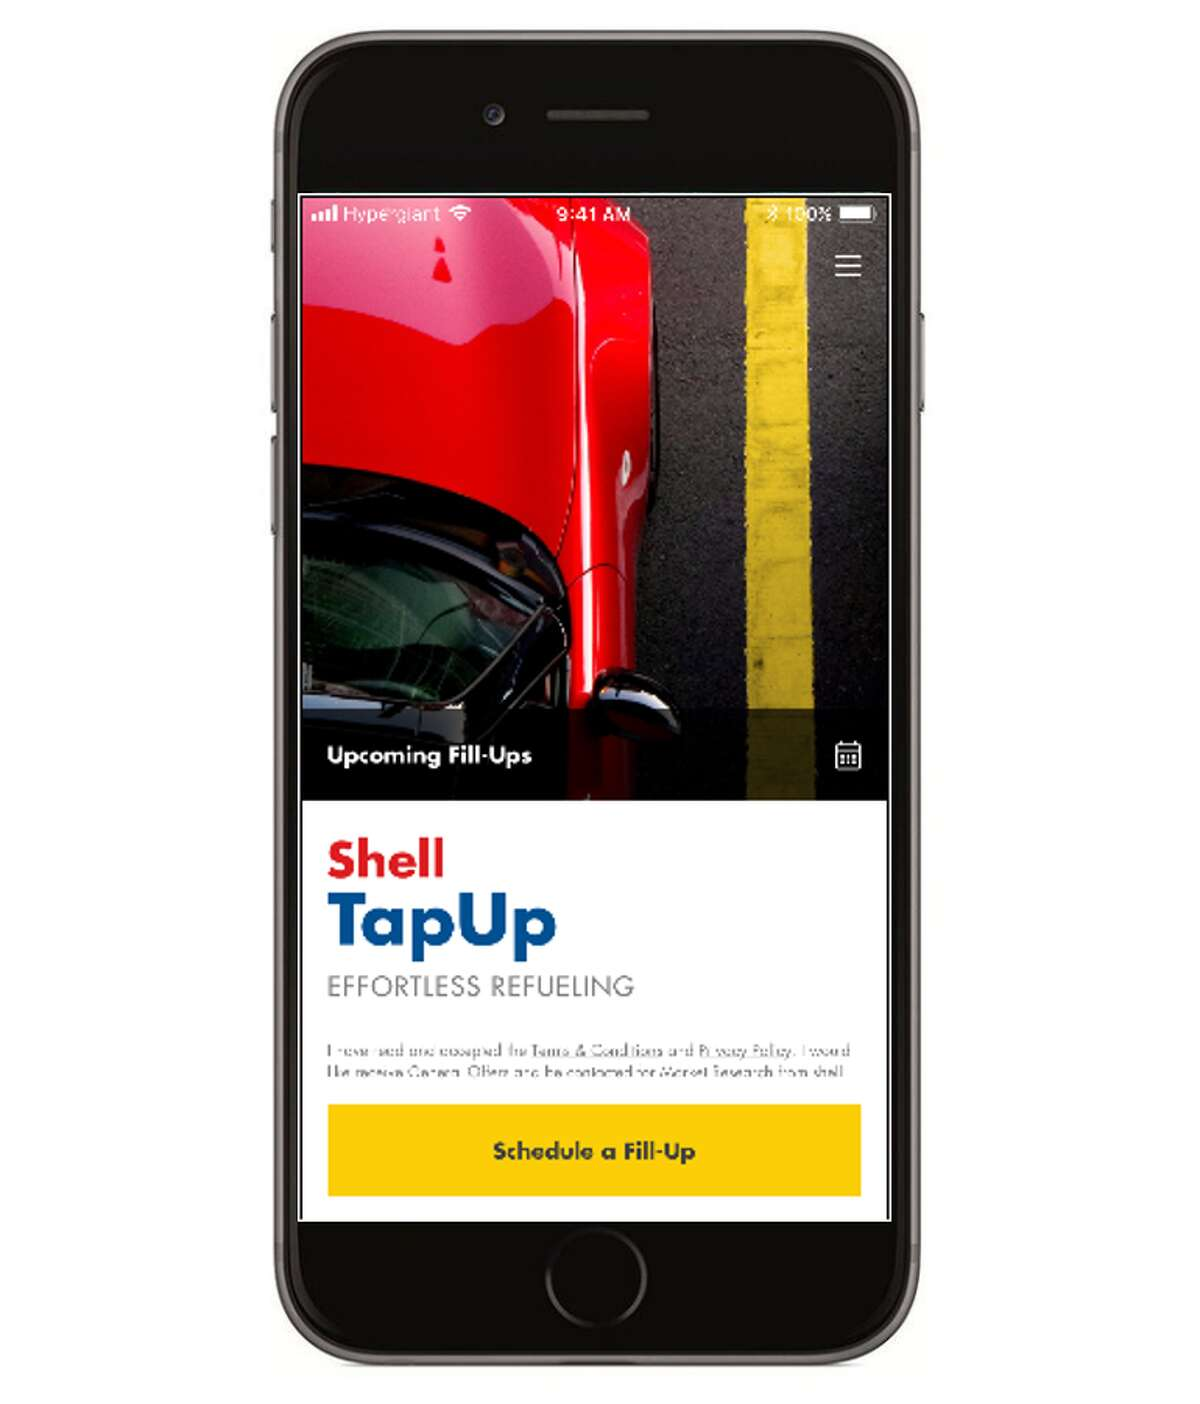 Shell's TapUp smartphone app will let you summon a fillup right to your car.